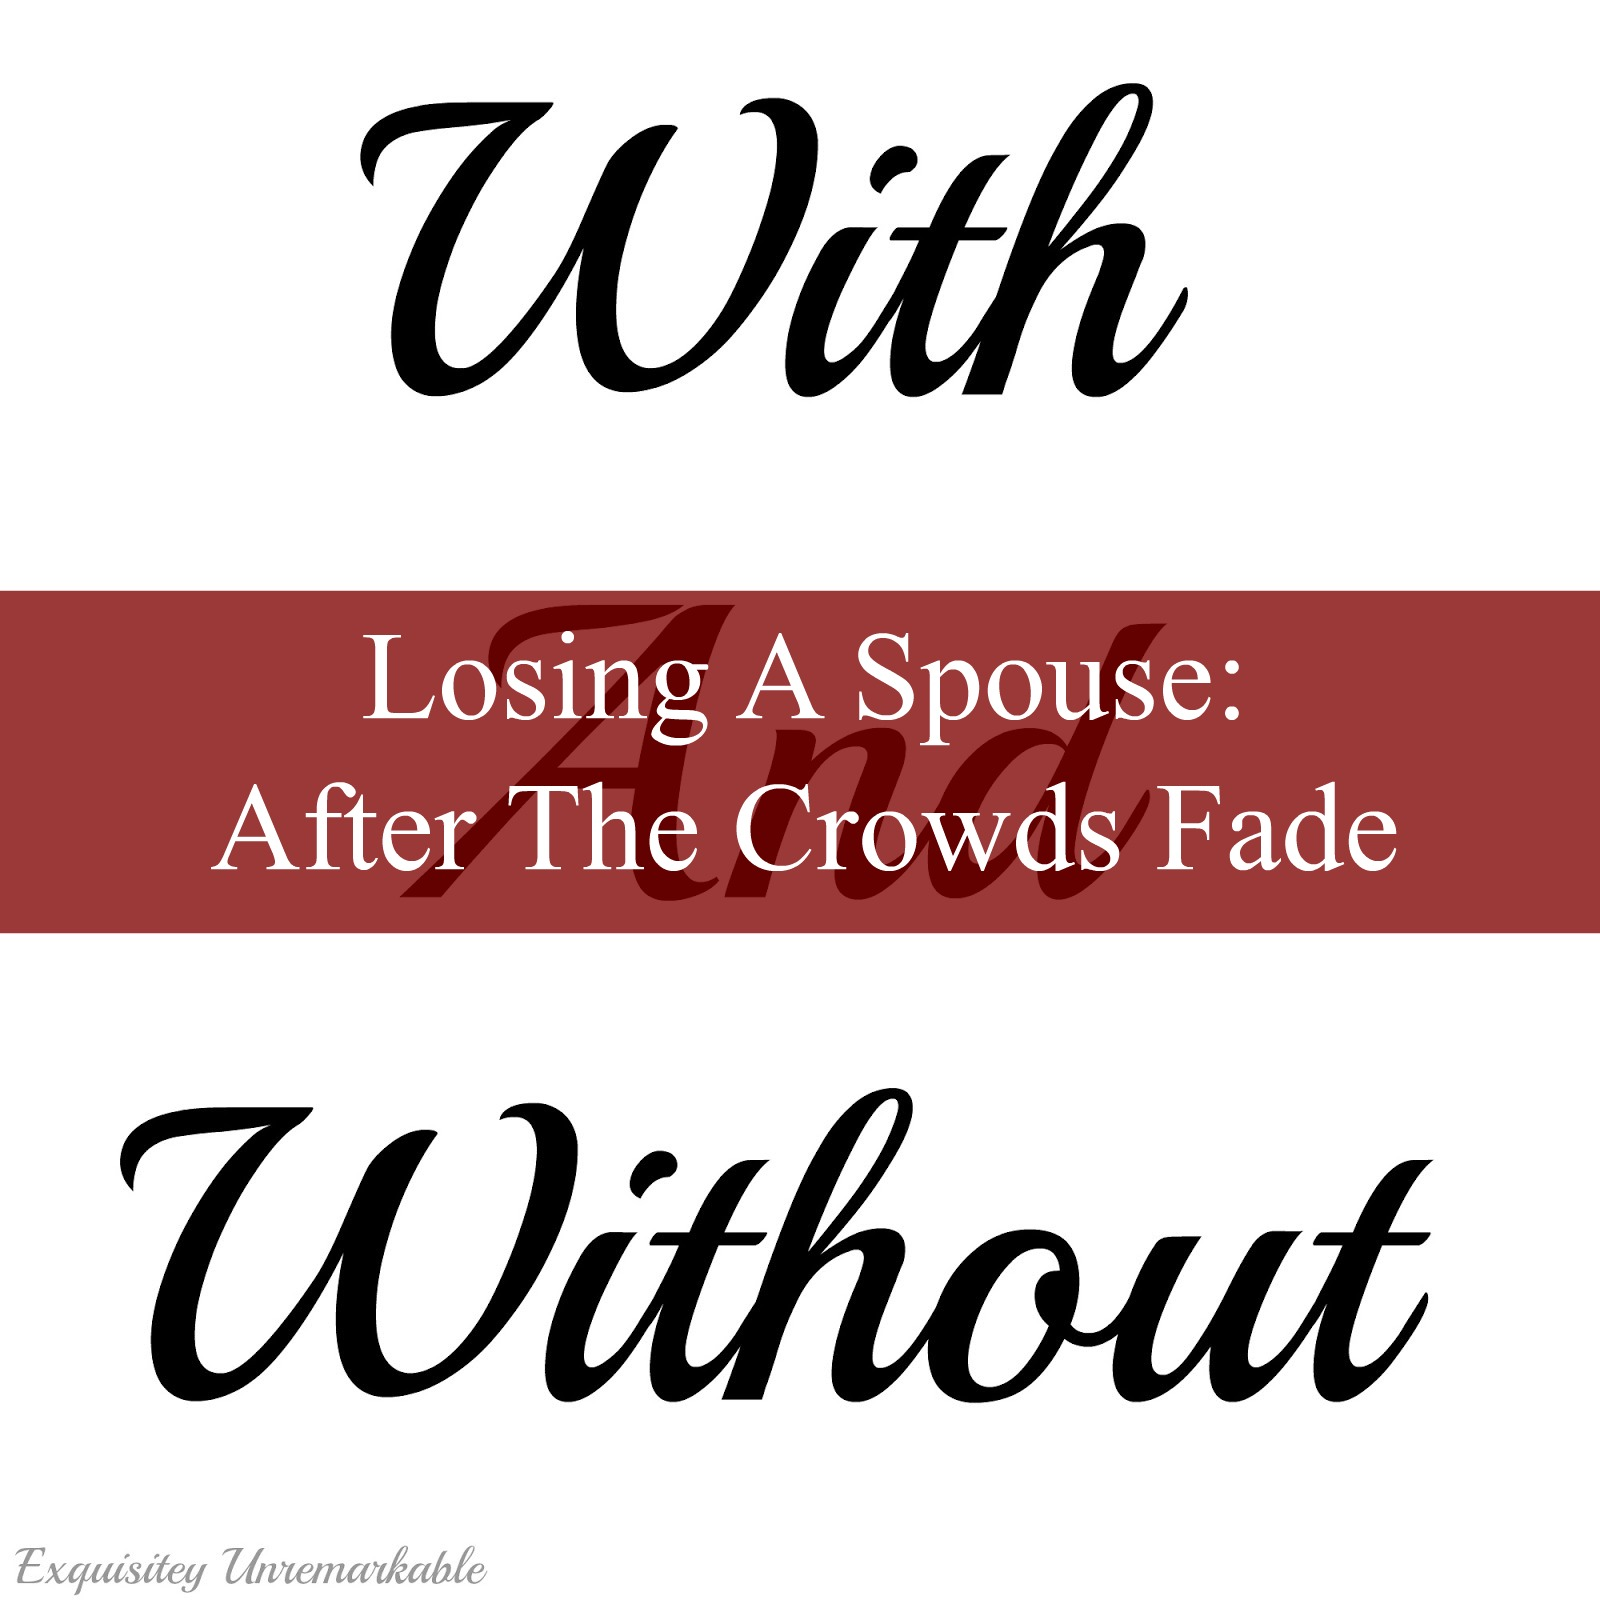 Losing a spouse and what happens after the crowds fade